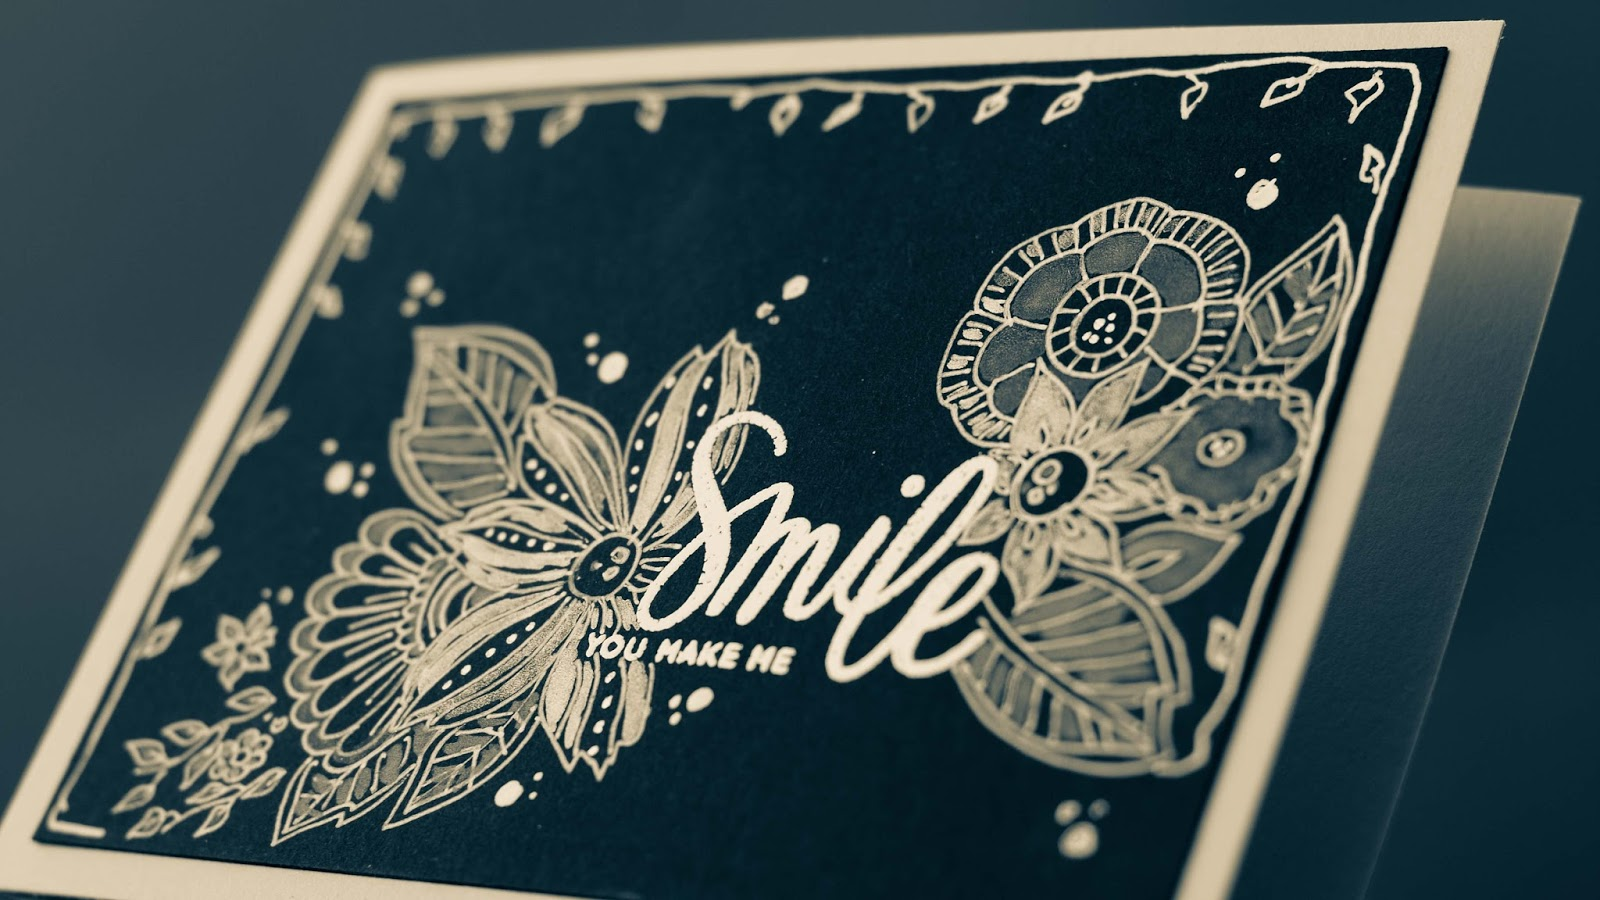 handdrawn doodle flowers arround white embossed sentiment twinkling H2o side view, black and white